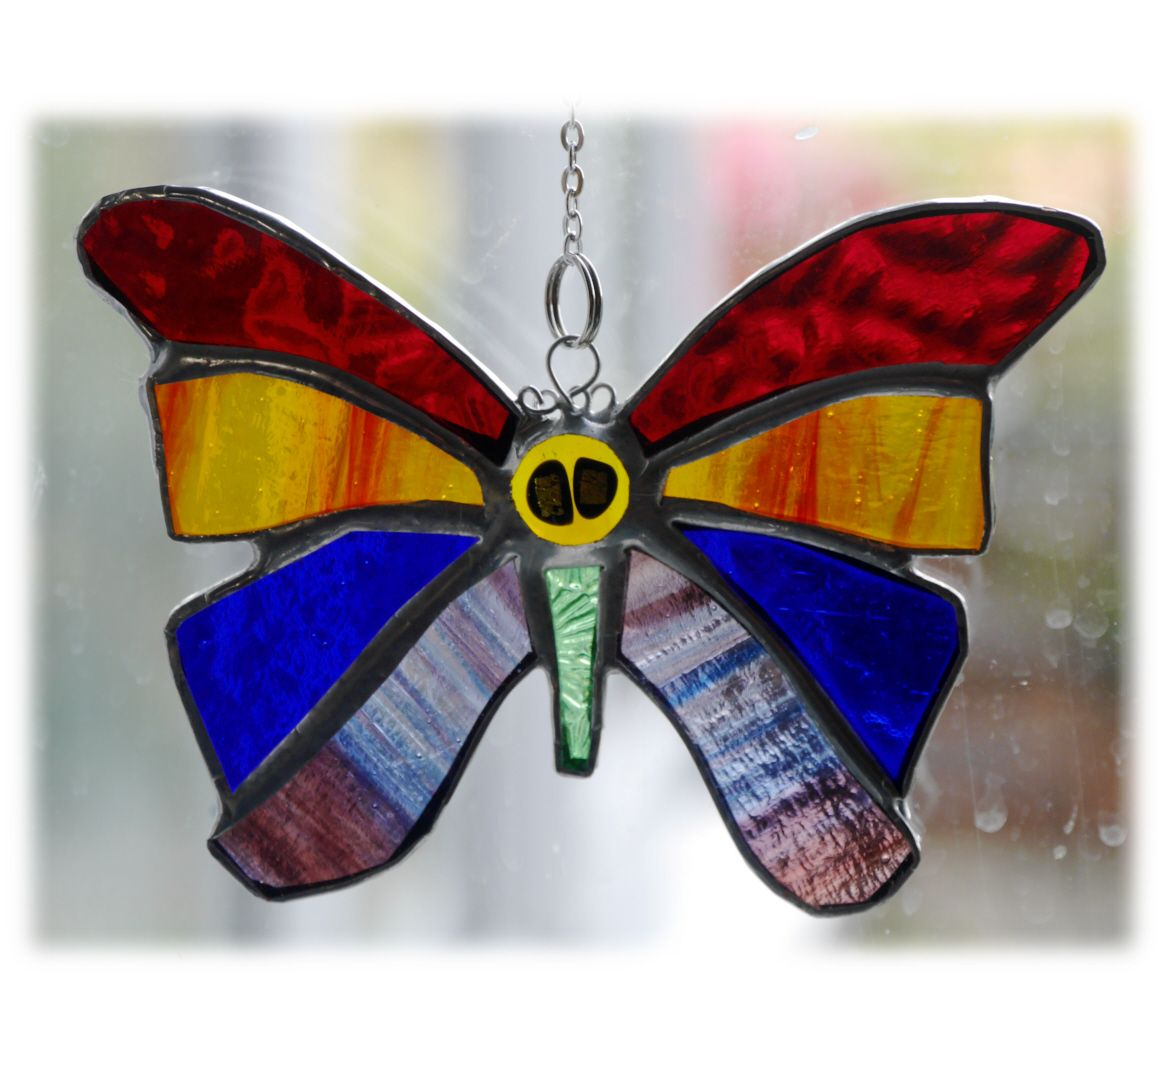 Birthstone Butterfly 048 rainbow #1808 FREE 13.00